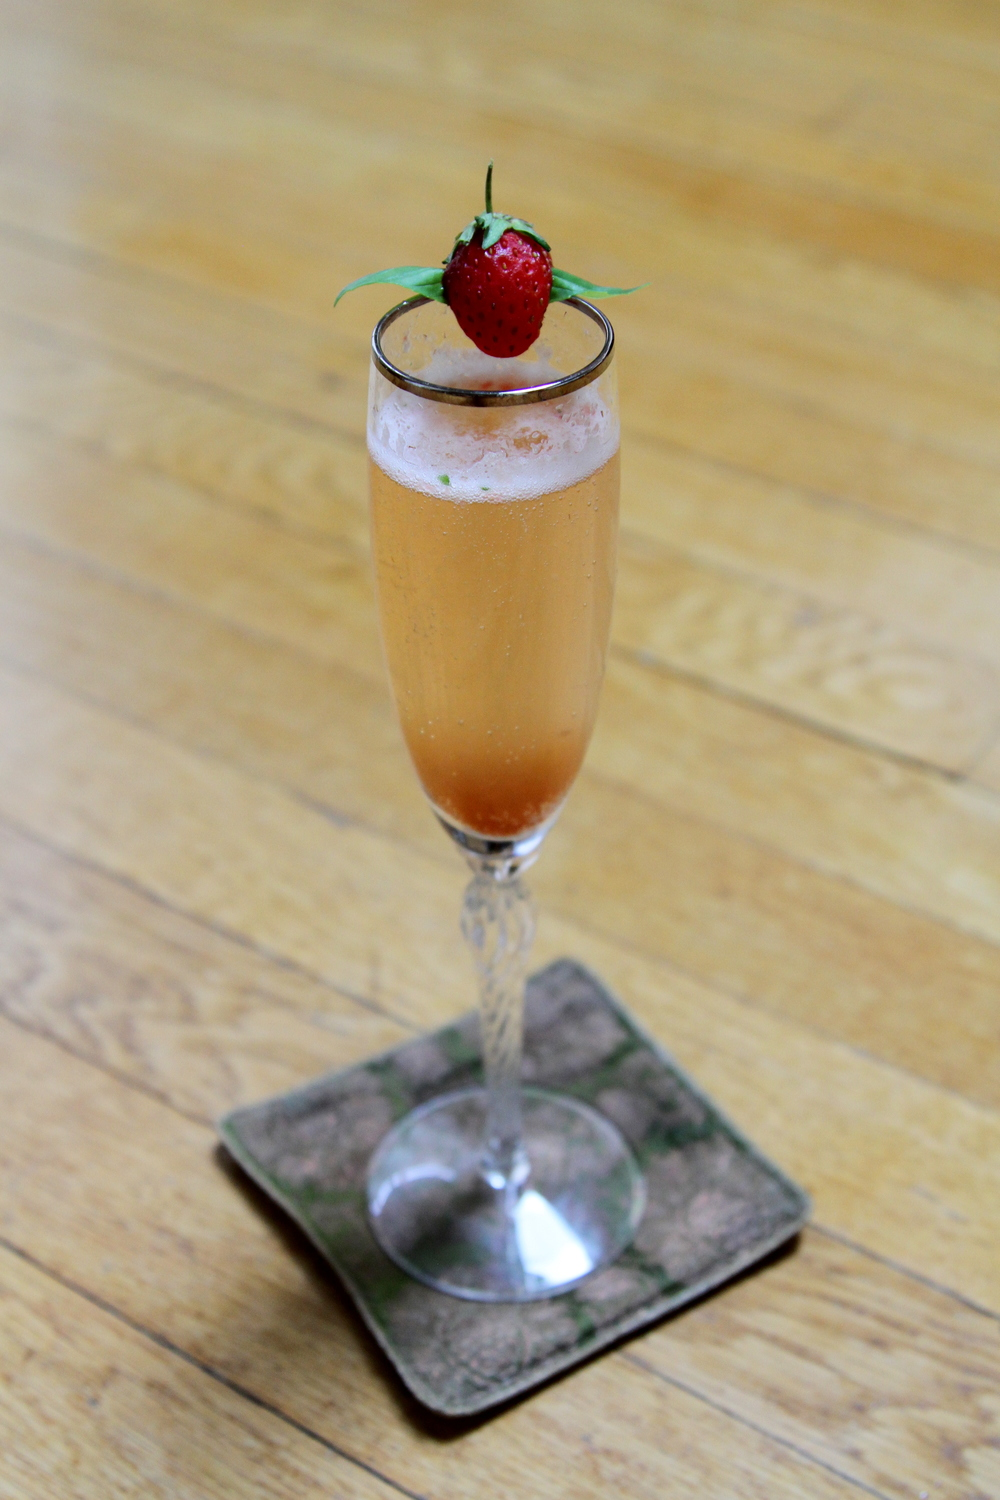 Strawberry, Rhubarb & Basil Prosecco